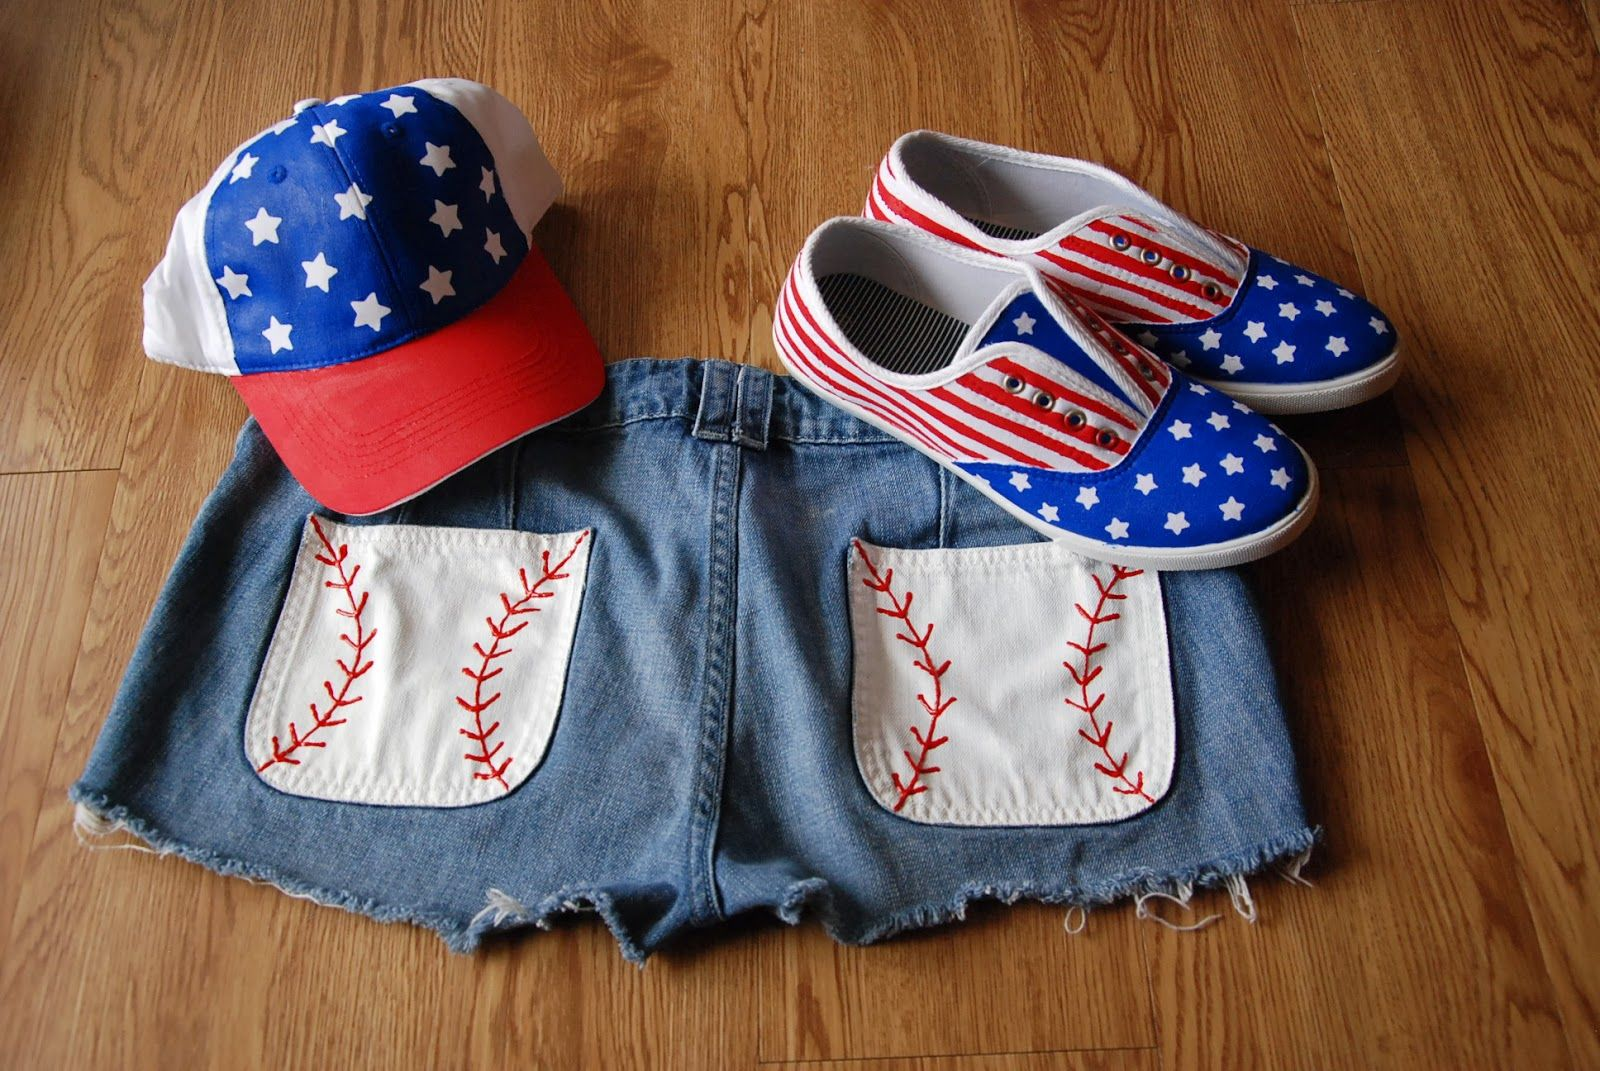 4th of July outfit!! shorts, hat, and shoes!!